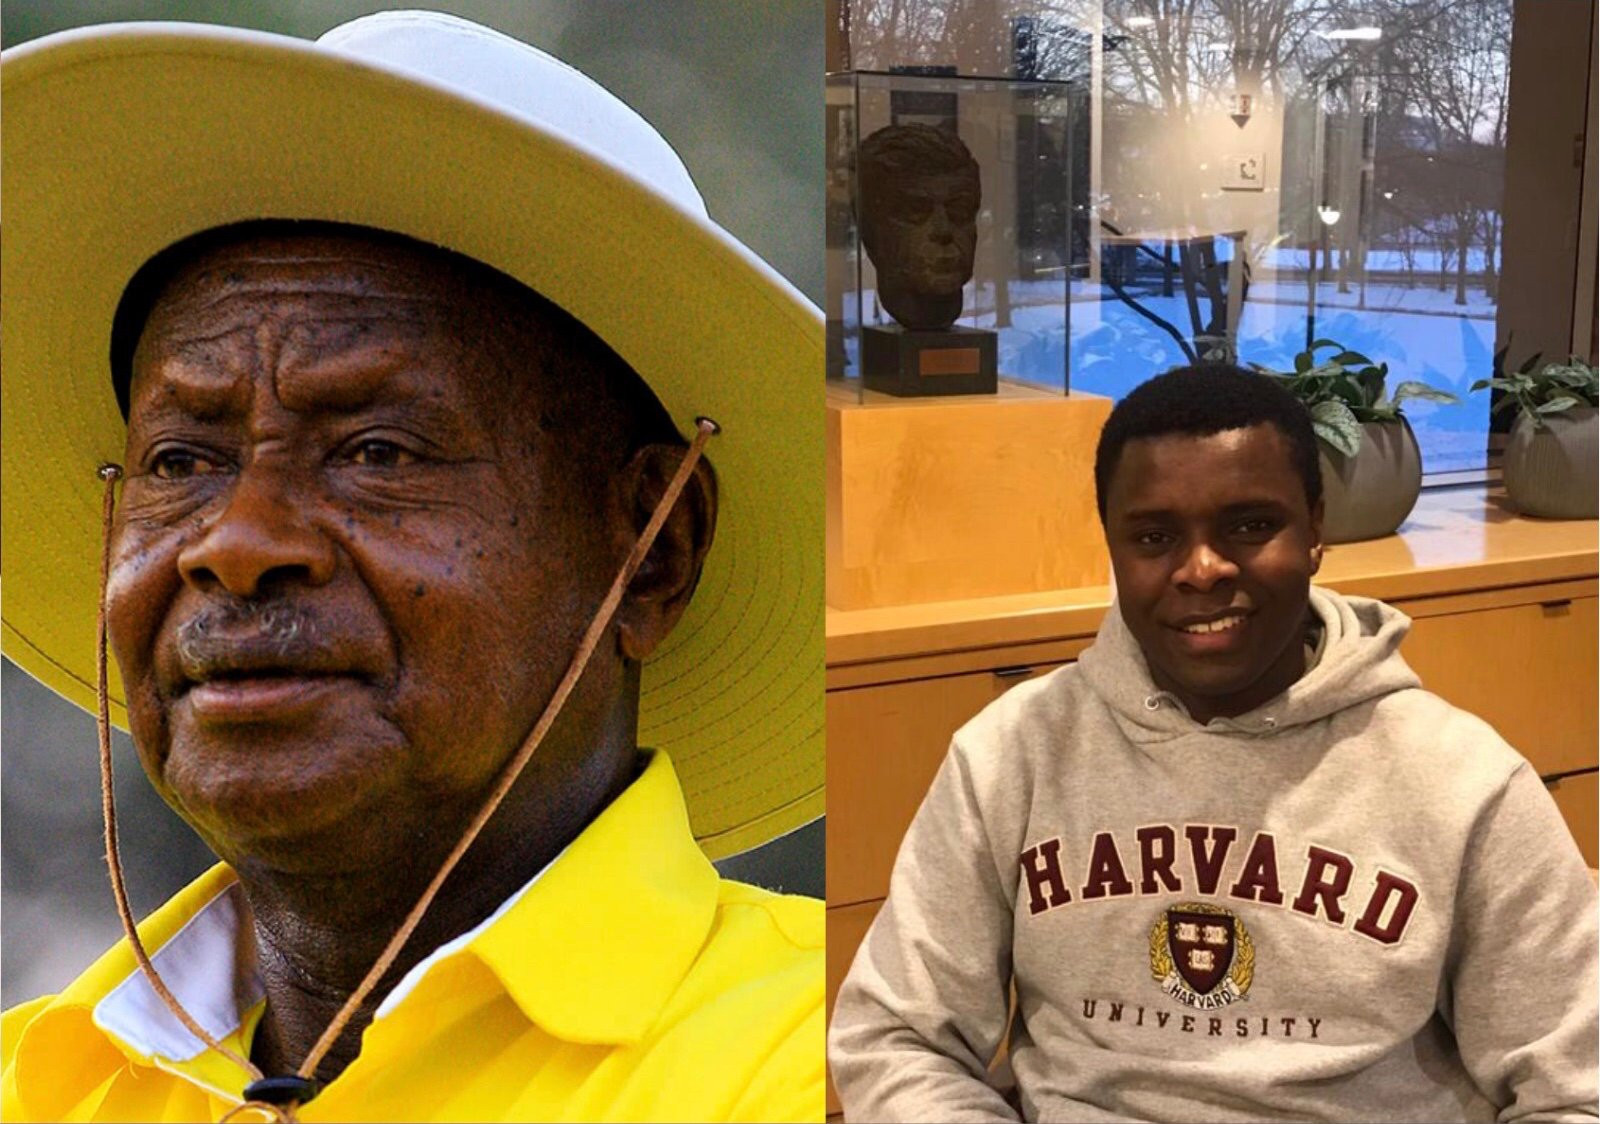 Harvard student sues Ugandan President Museveni for blocking him on Twitter